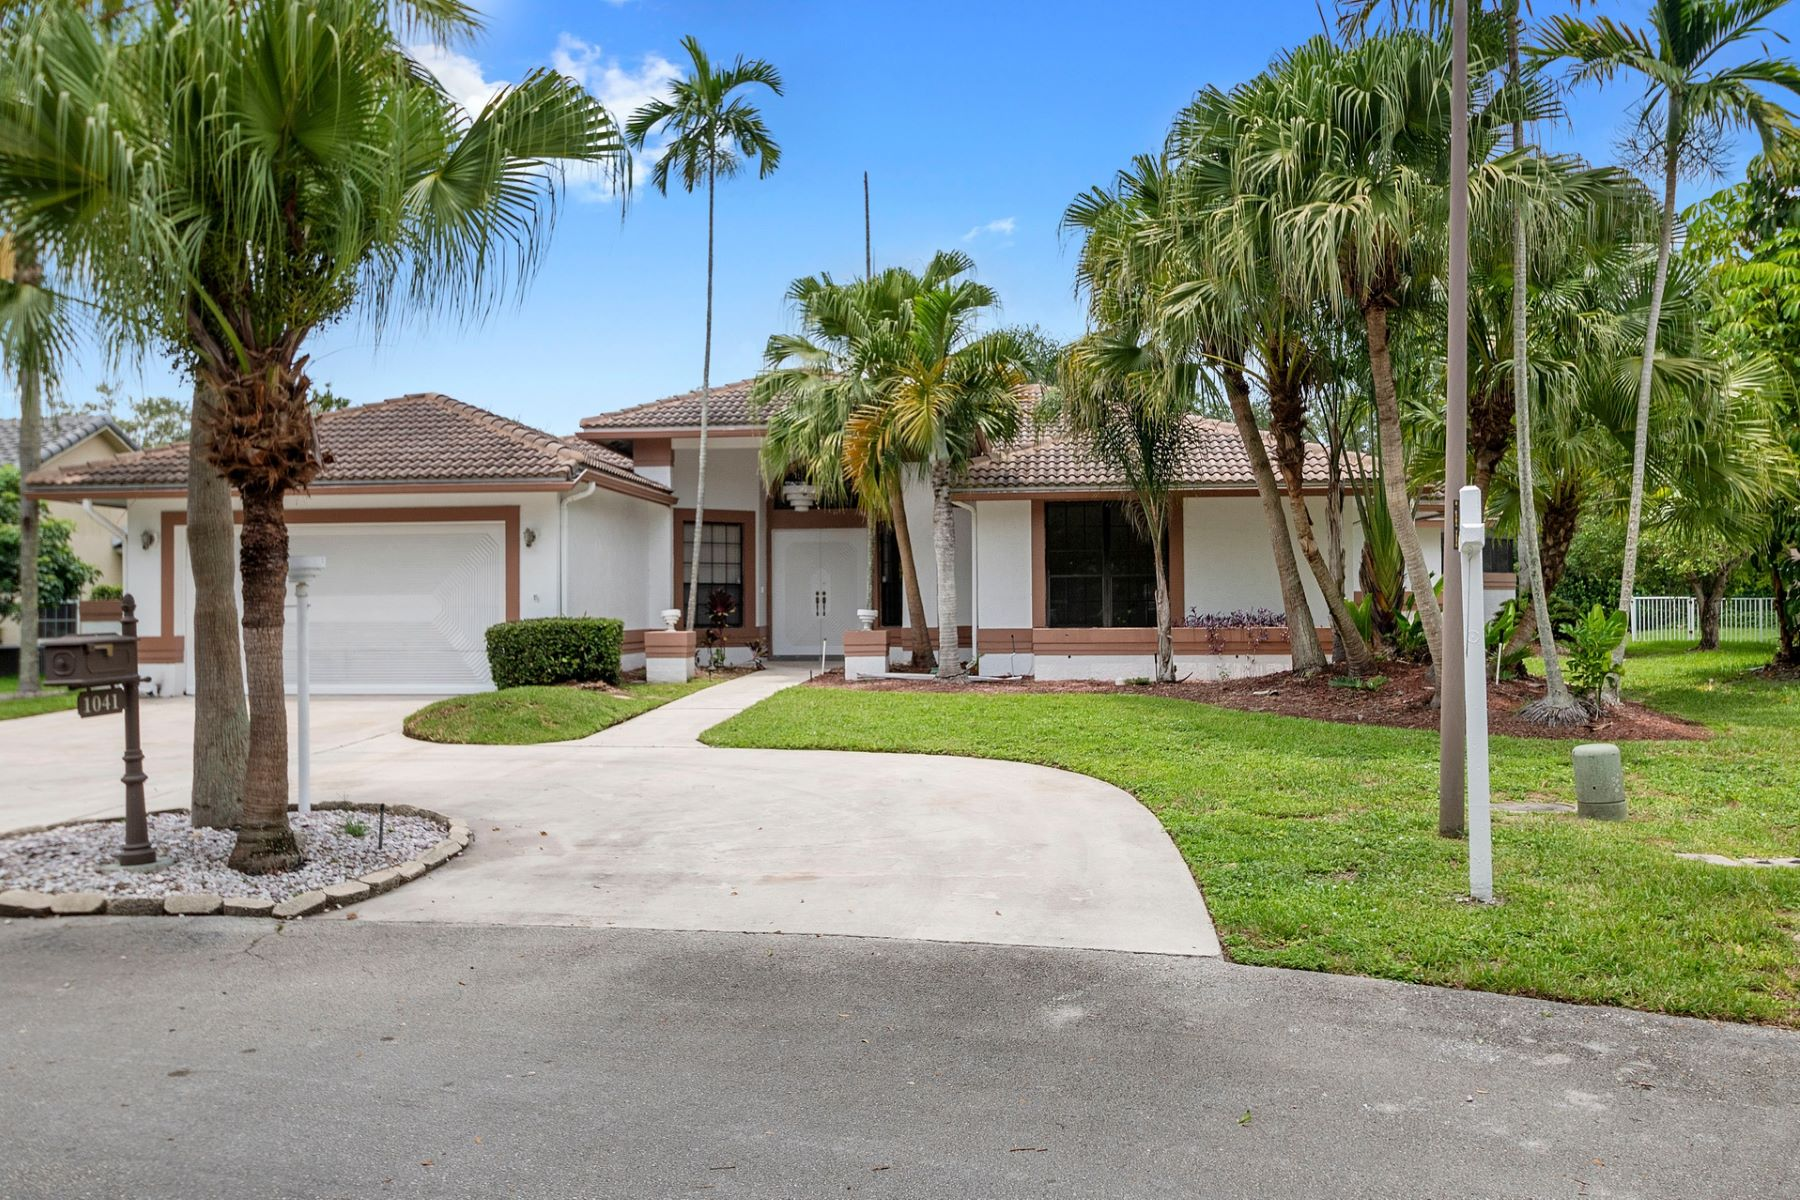 Single Family Homes for Active at 1041 Nw 93rd Ter Plantation, Florida 33322 United States